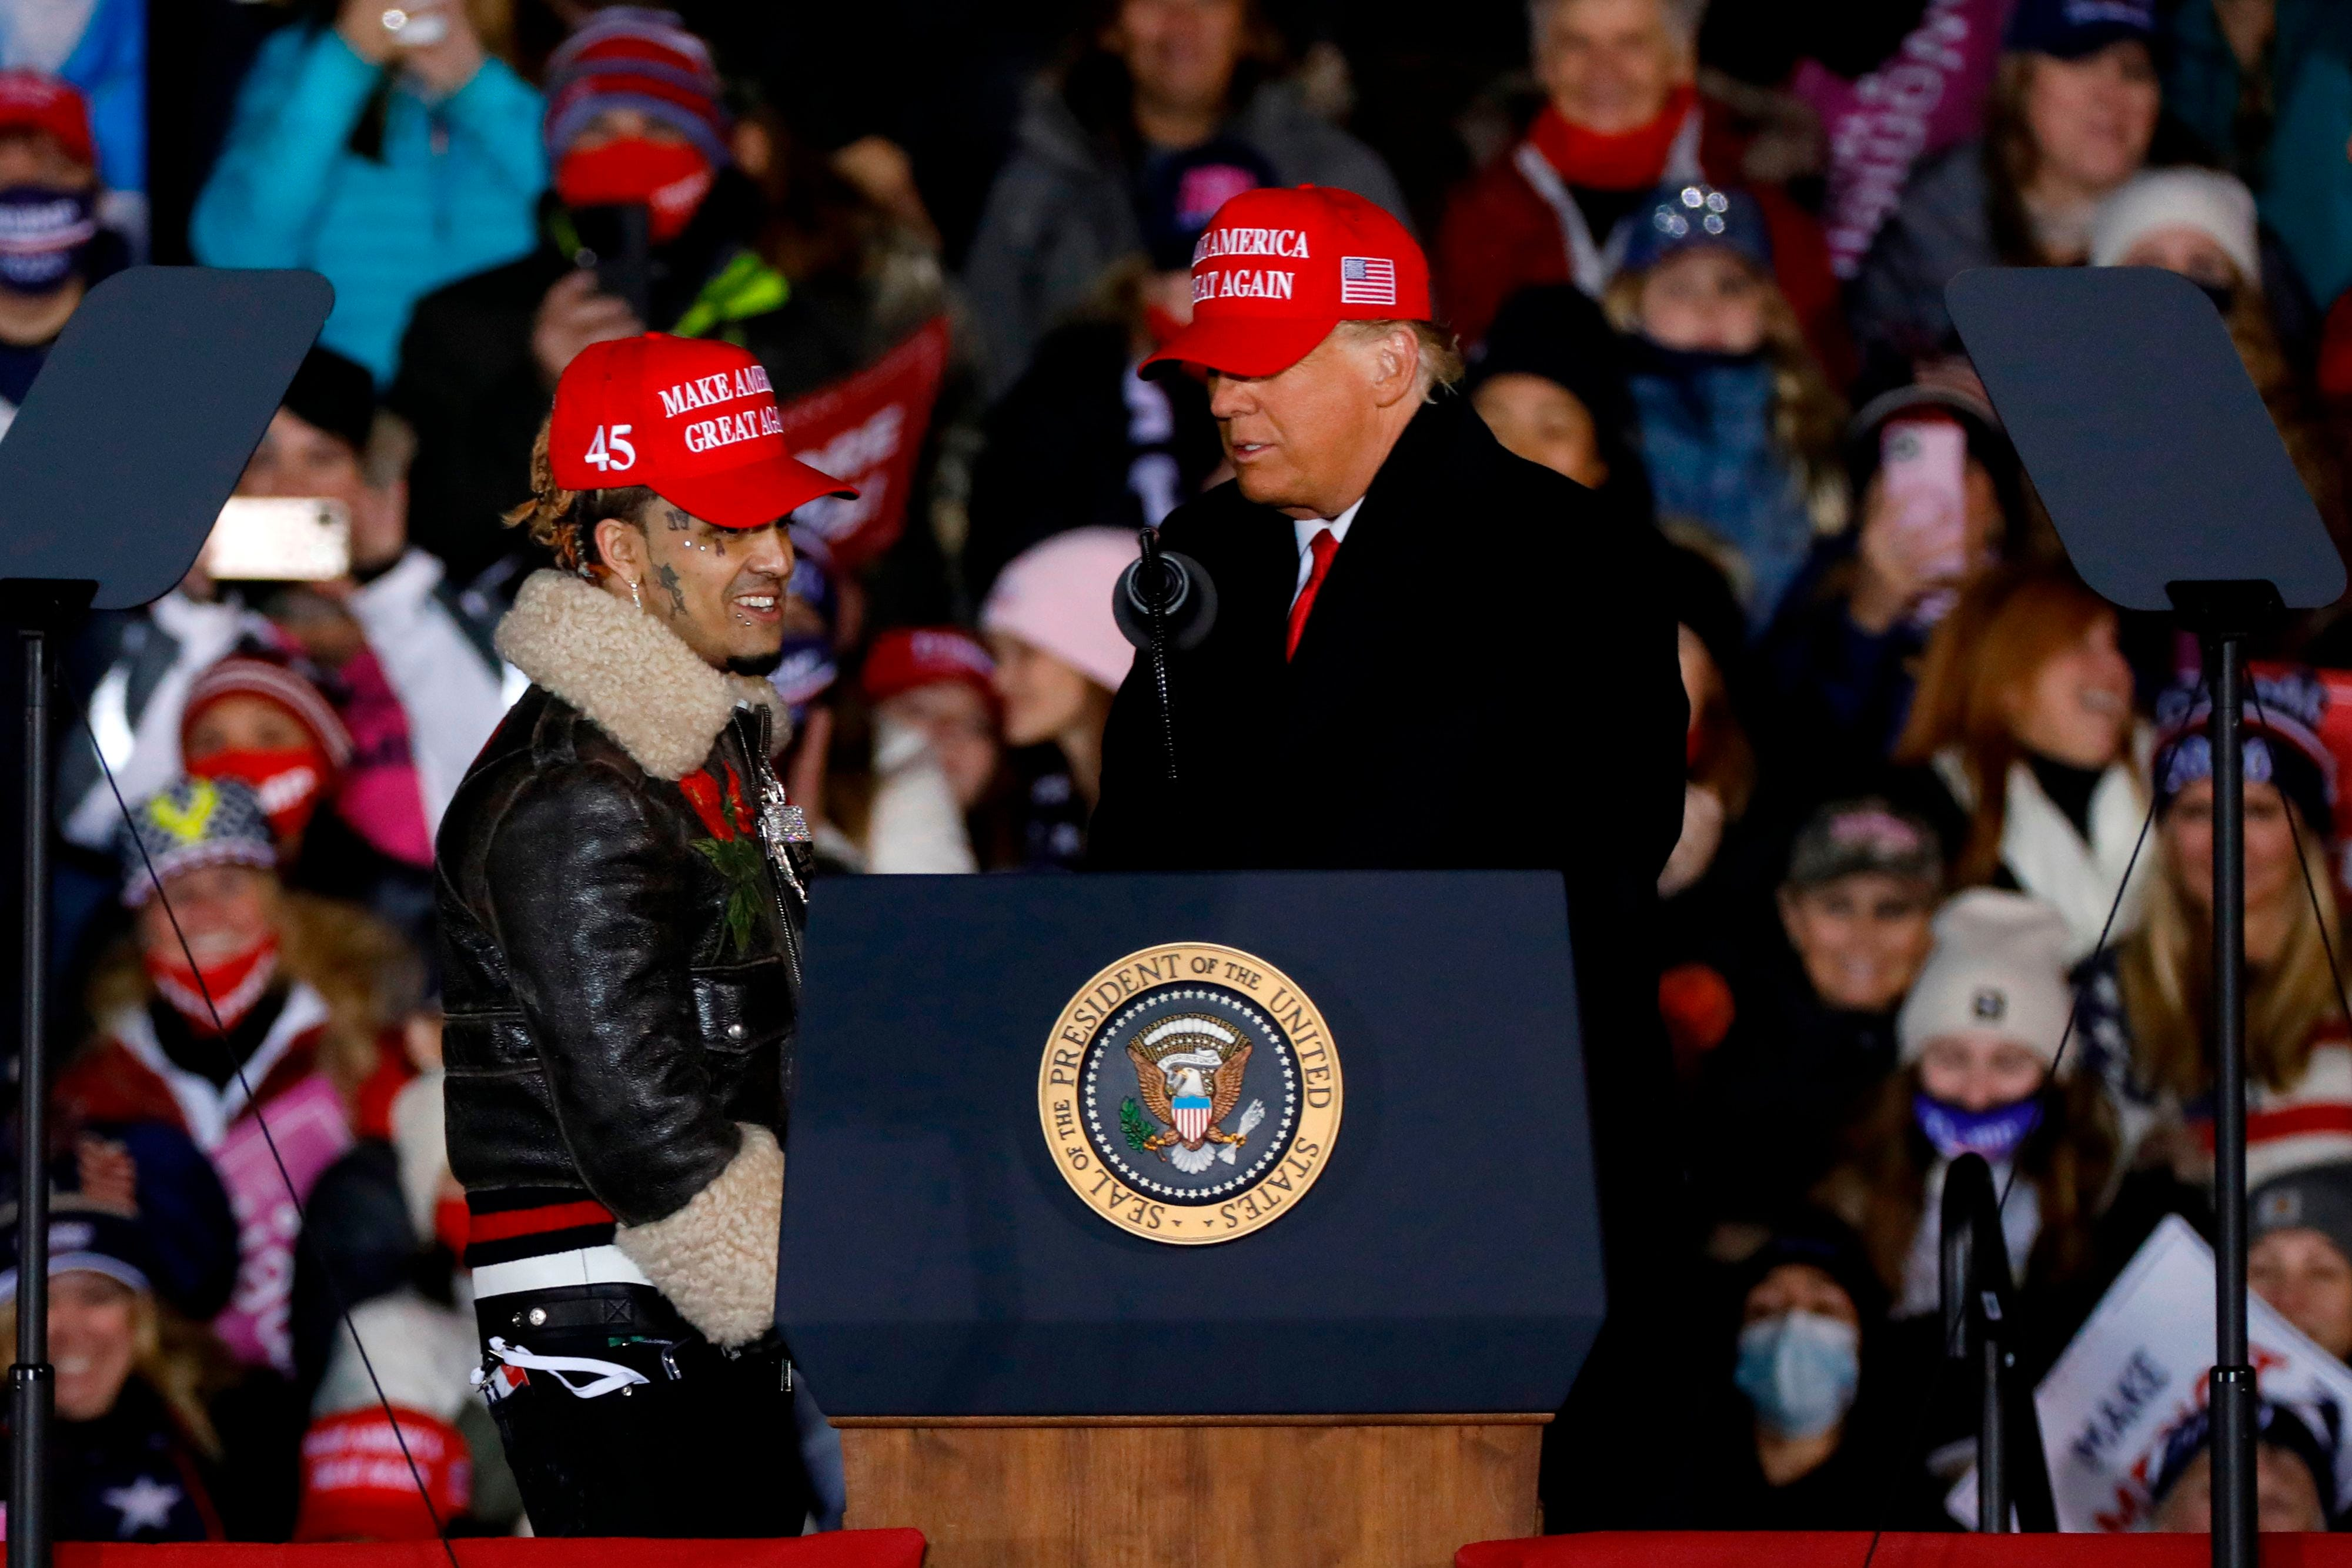 Lil Pump joins Trump at rally, John Legend campaigns for Biden, more stars make final election pleas